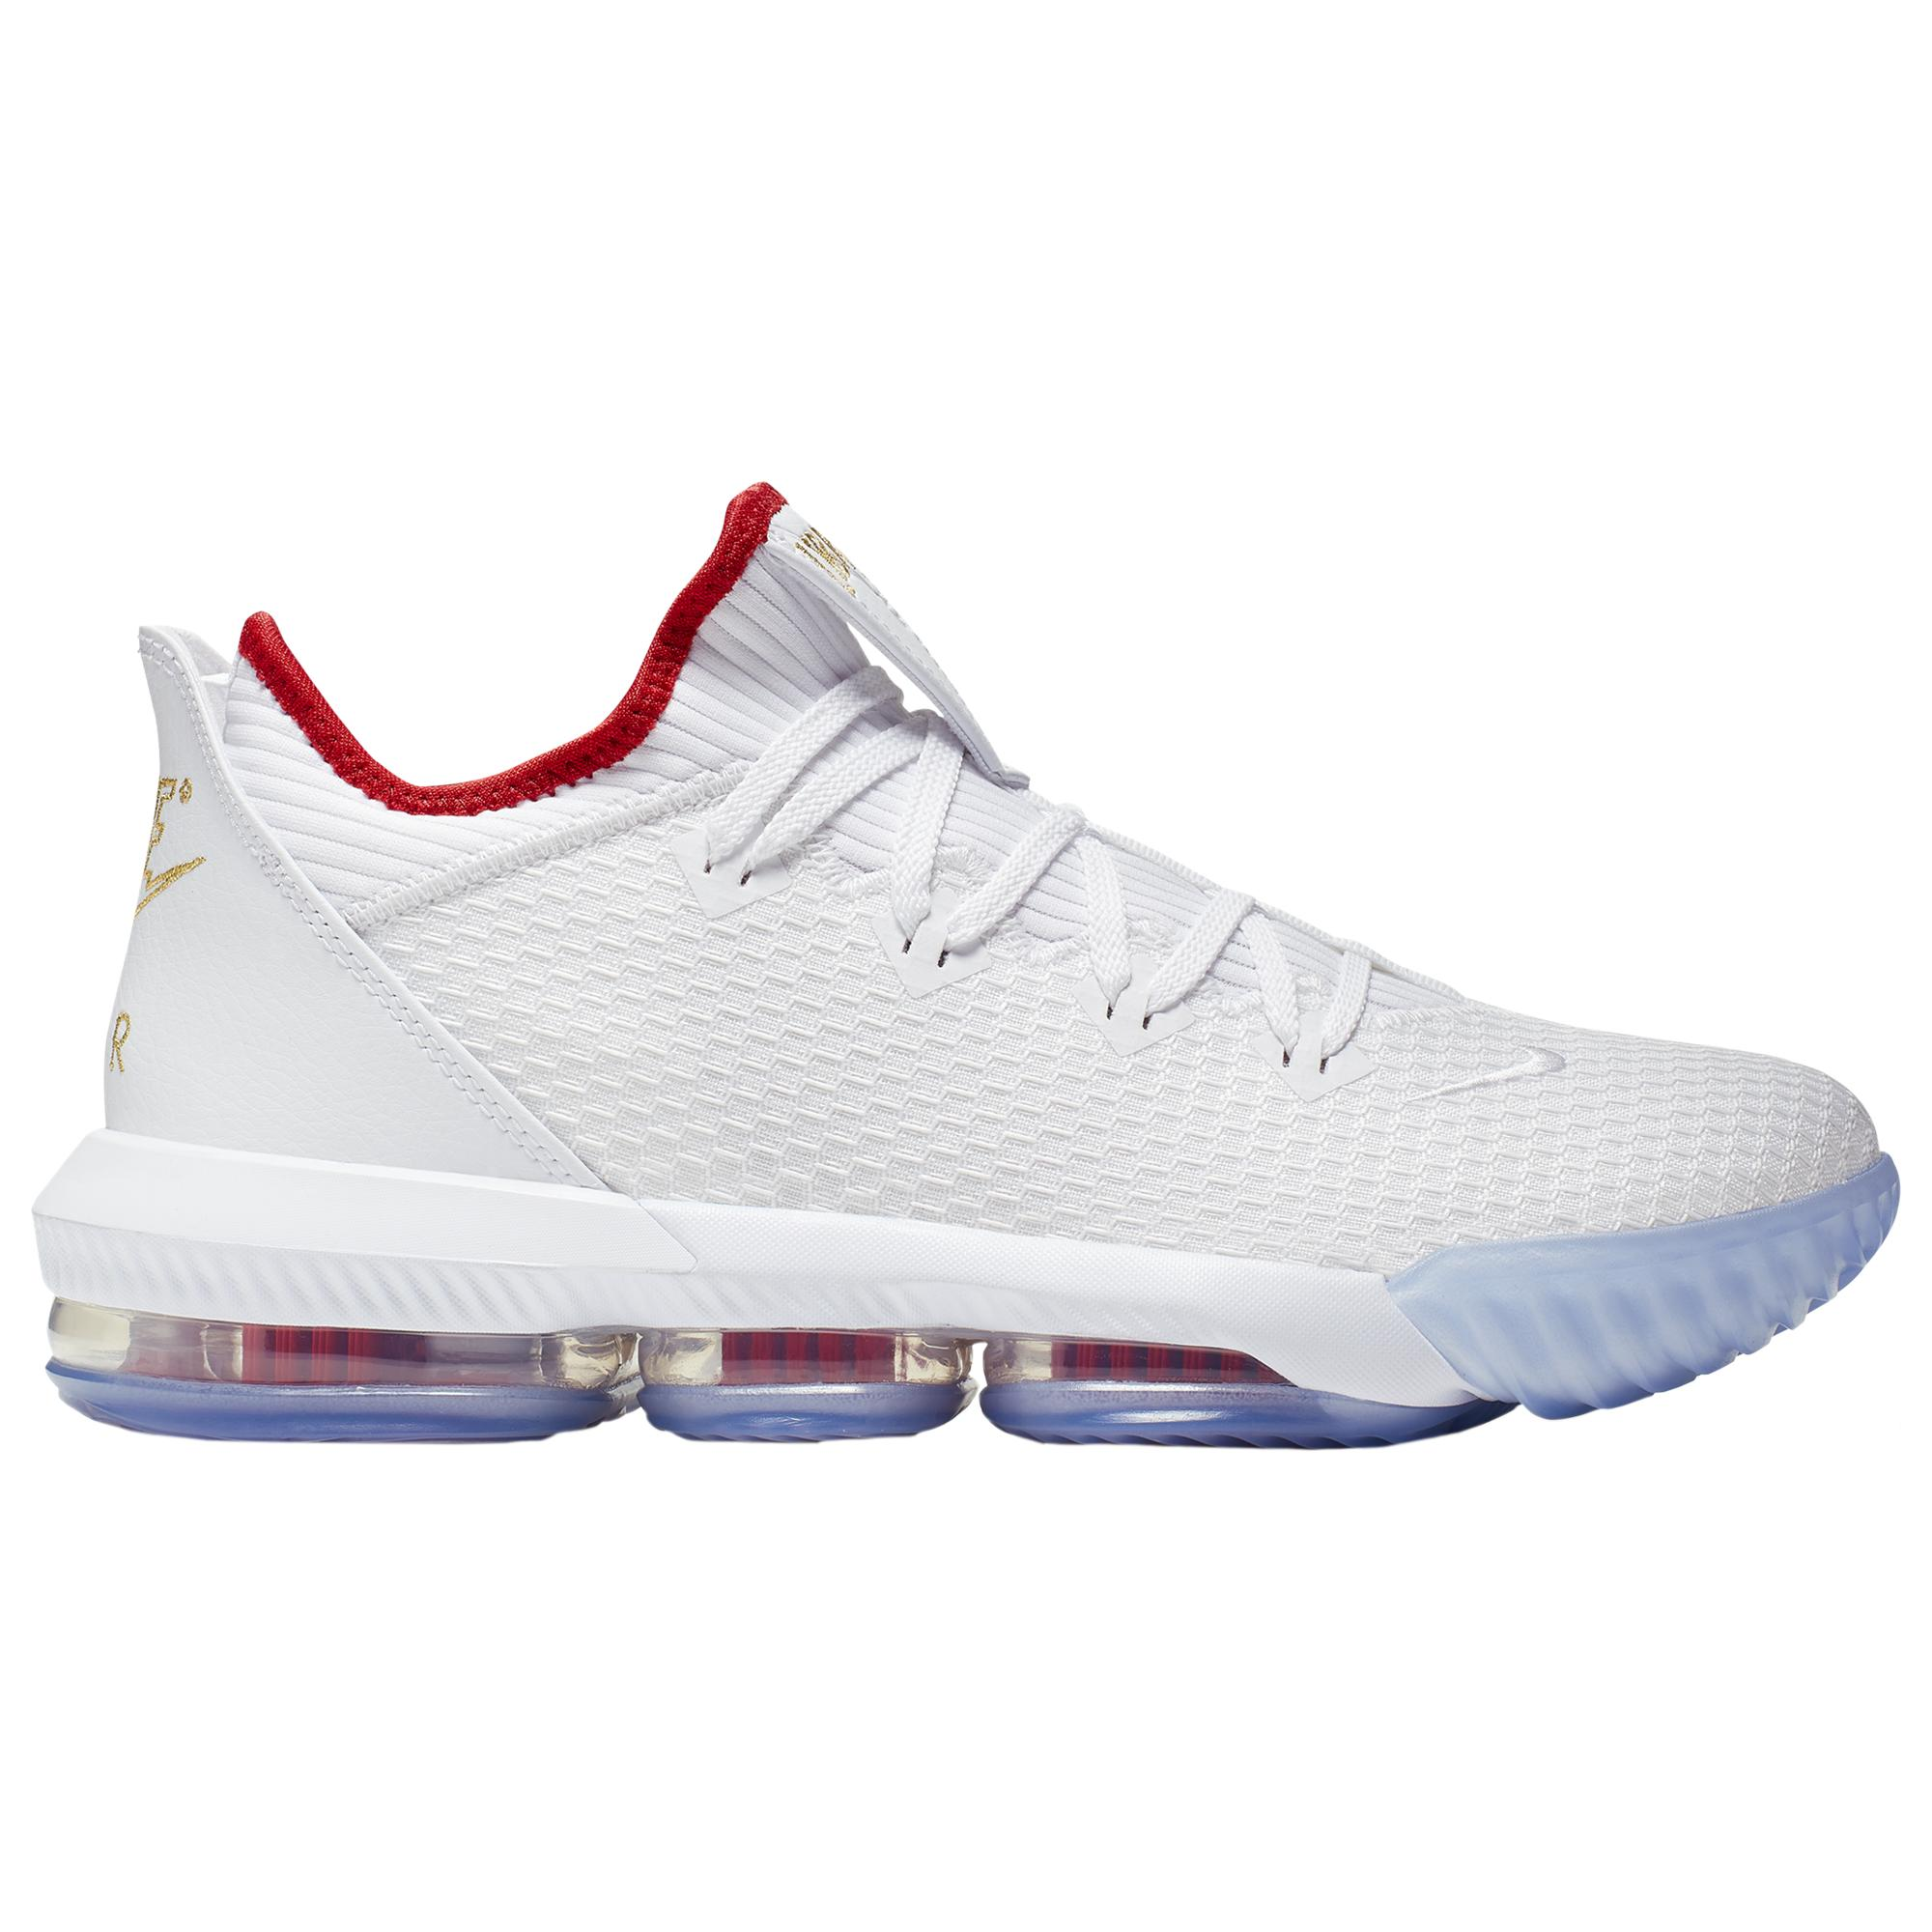 Nike Lebron 16 Low Basketball Shoes in